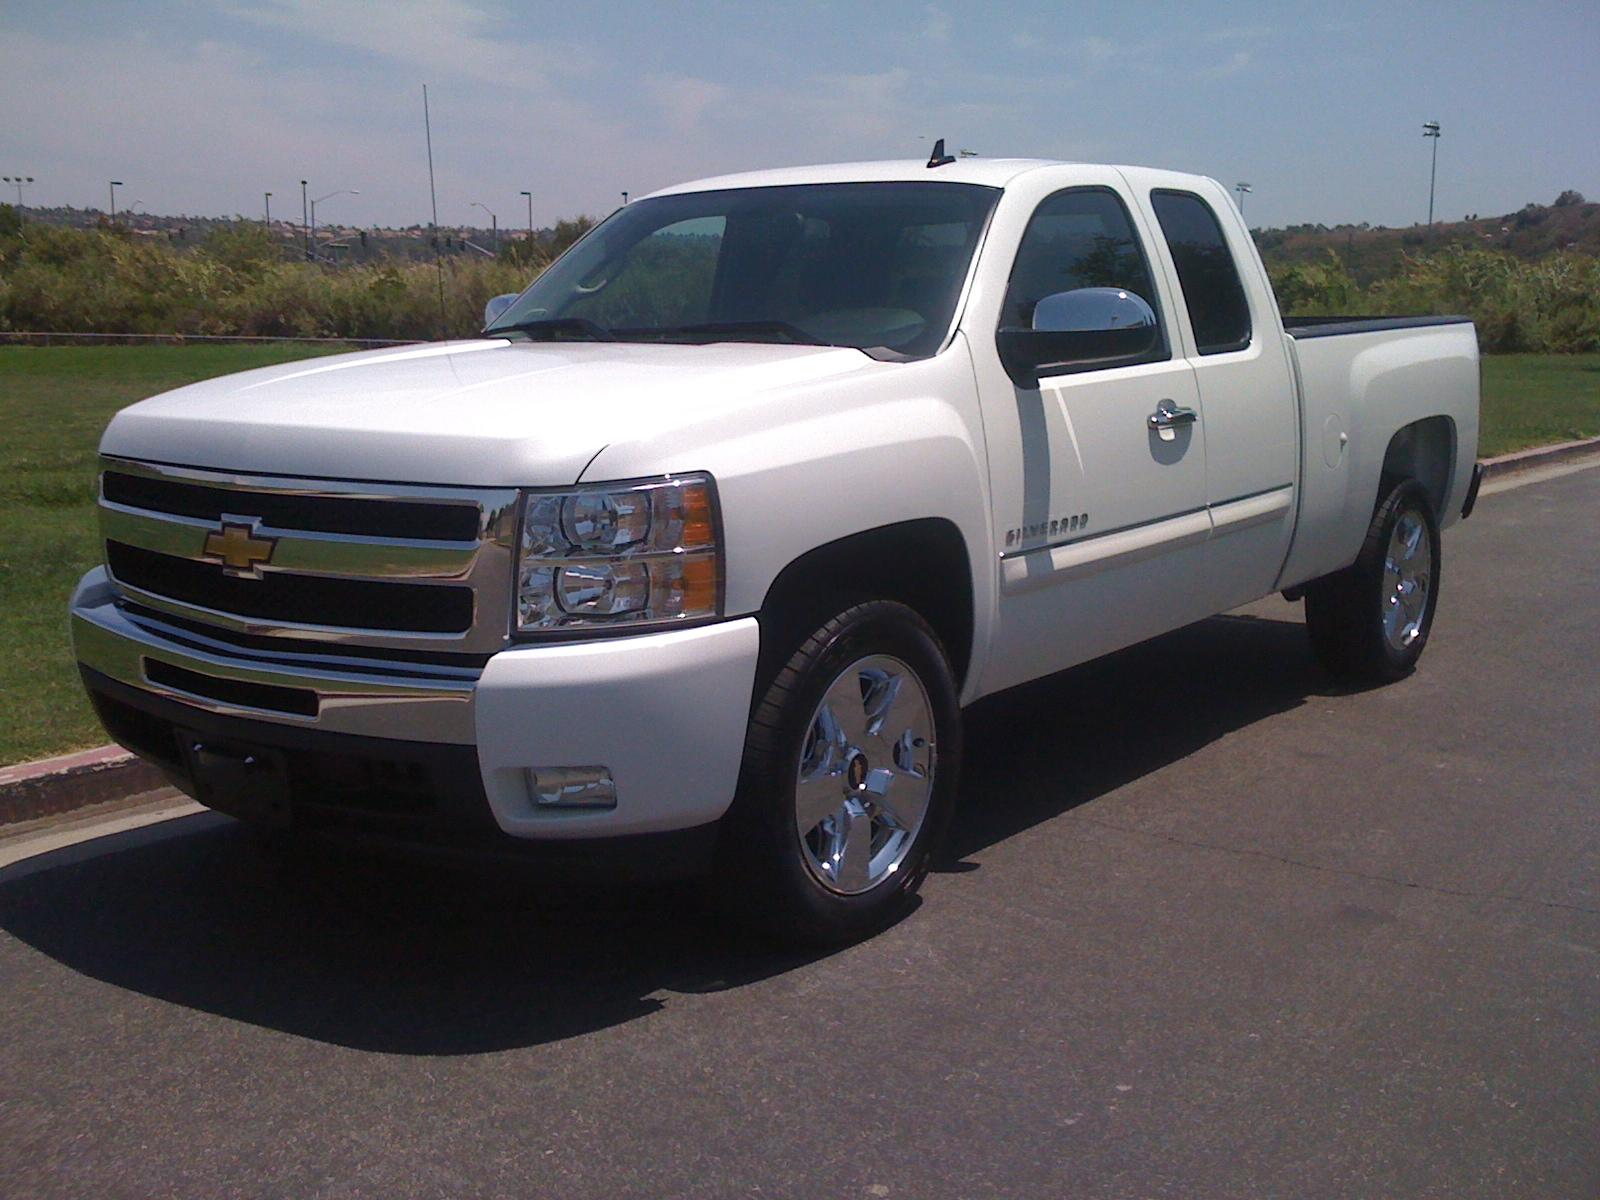 2011 chevrolet silverado 1500 extended cab view all 2011 chevrolet silverado 1500 extended cab. Black Bedroom Furniture Sets. Home Design Ideas